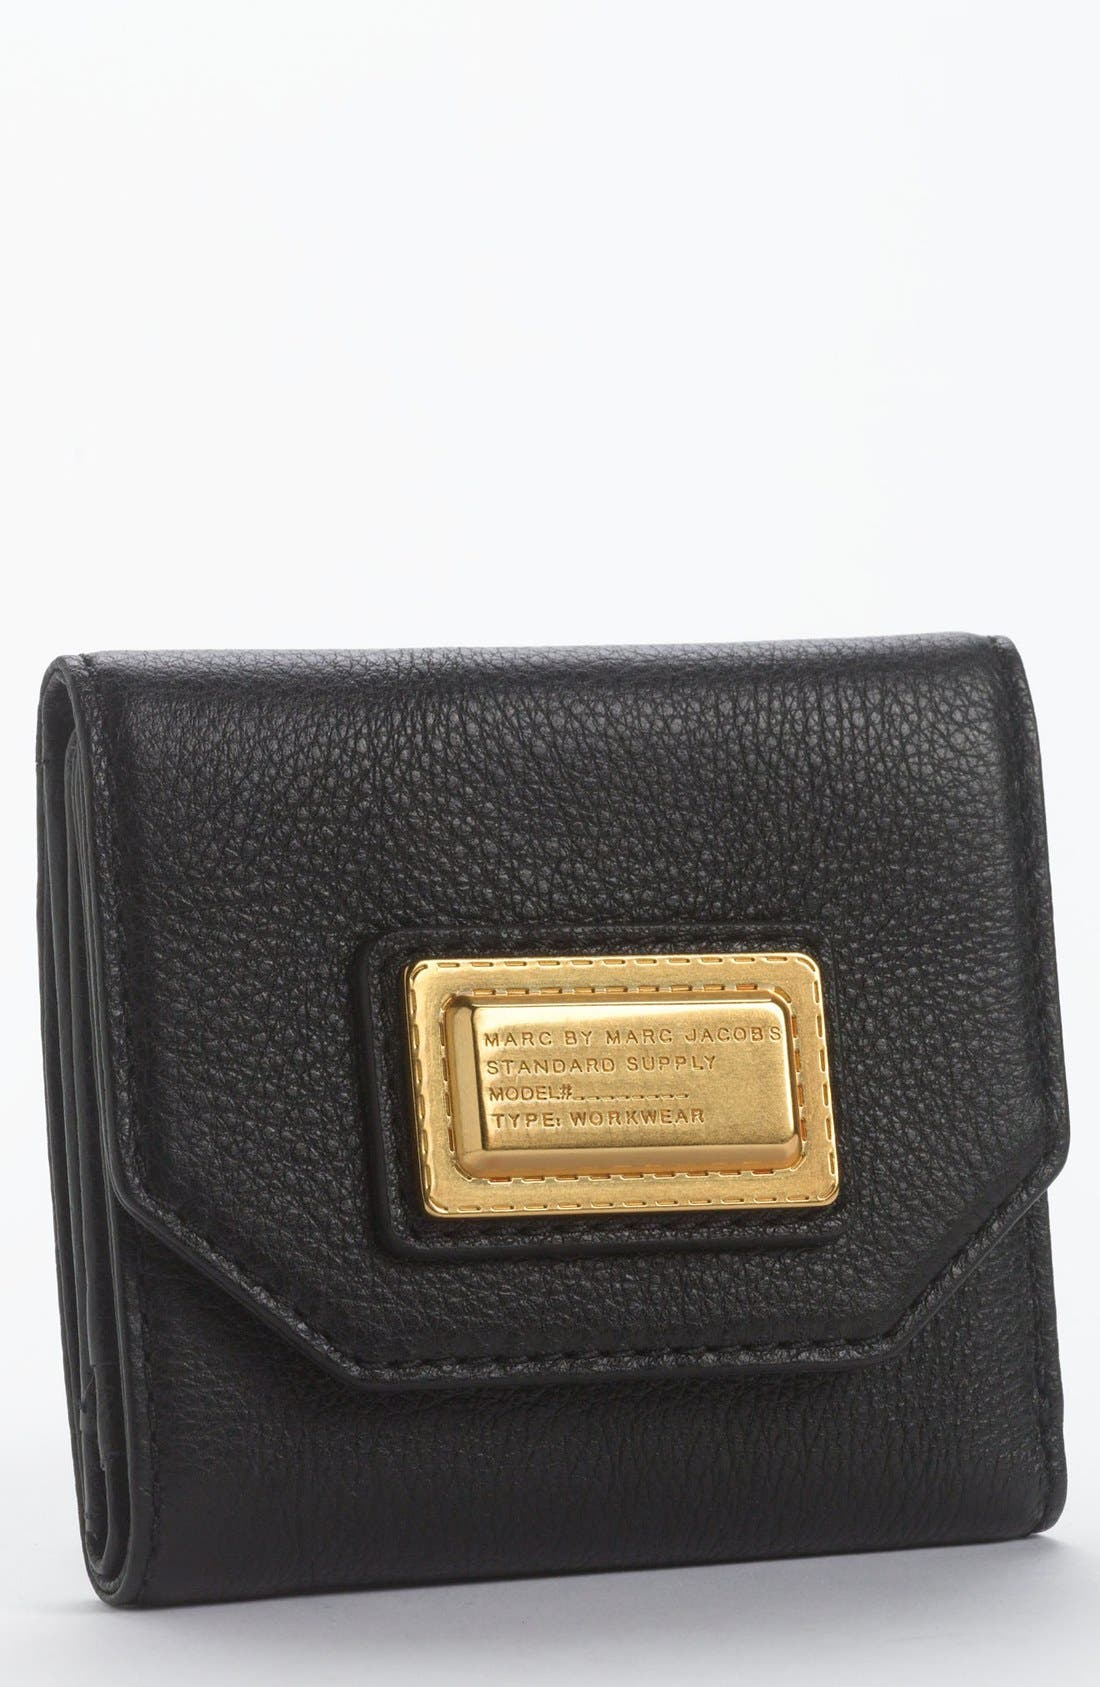 MARC BY MARC JACOBS Bifold French Wallet,                             Main thumbnail 1, color,                             001